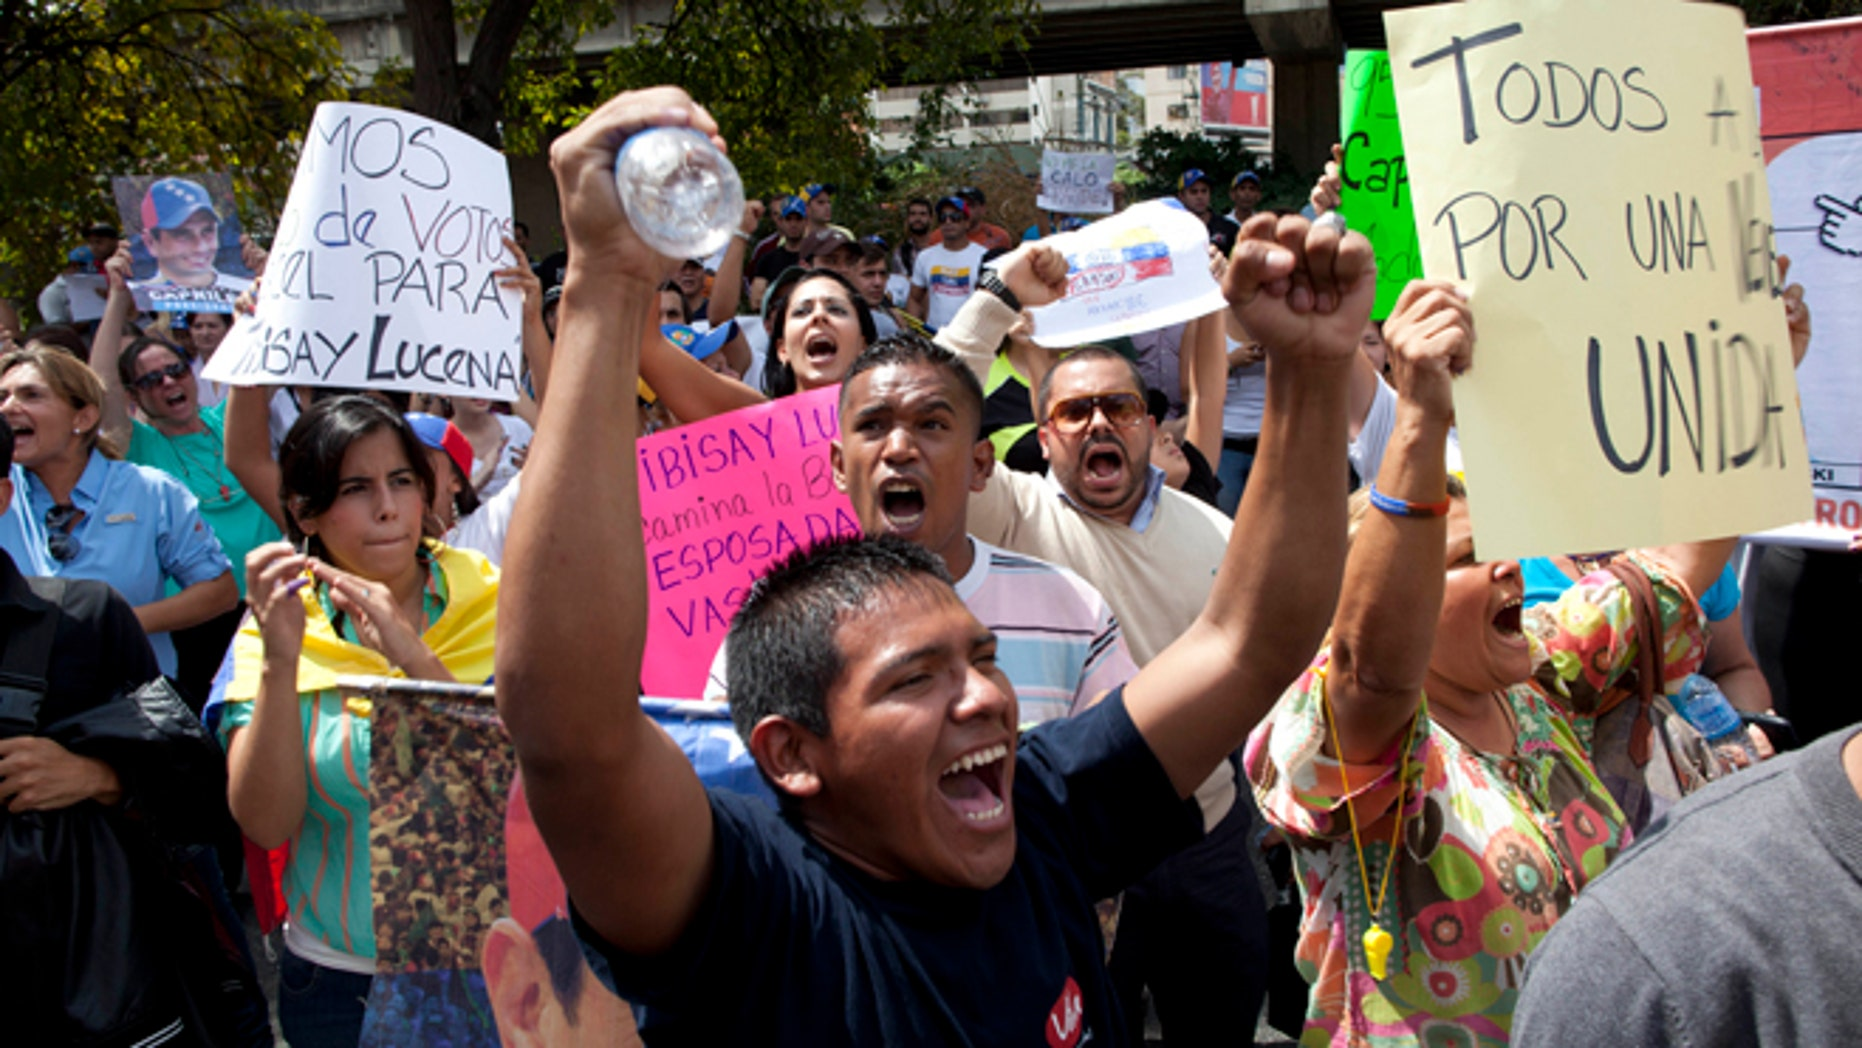 Opposition supporters protest the official results of the presidential election in Caracas, Venezuela, Monday, April 15, 2013. Hugo Chavez's hand-picked successor, Nicolas Maduro, won a razor-thin victory in Sunday's special presidential election but the opposition candidate Henrique Capriles refused to accept the result and demanded a full recount .(AP Photo/Ramon Espinosa)